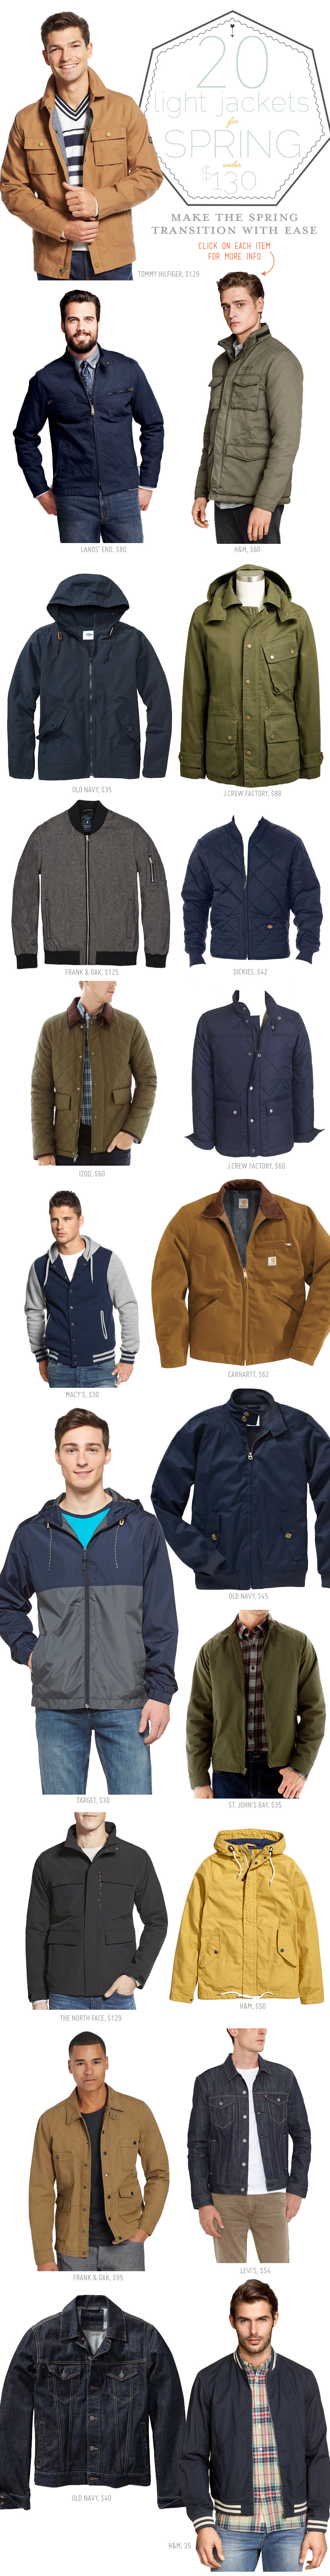 An infographic feature 20 spring jackets under $130